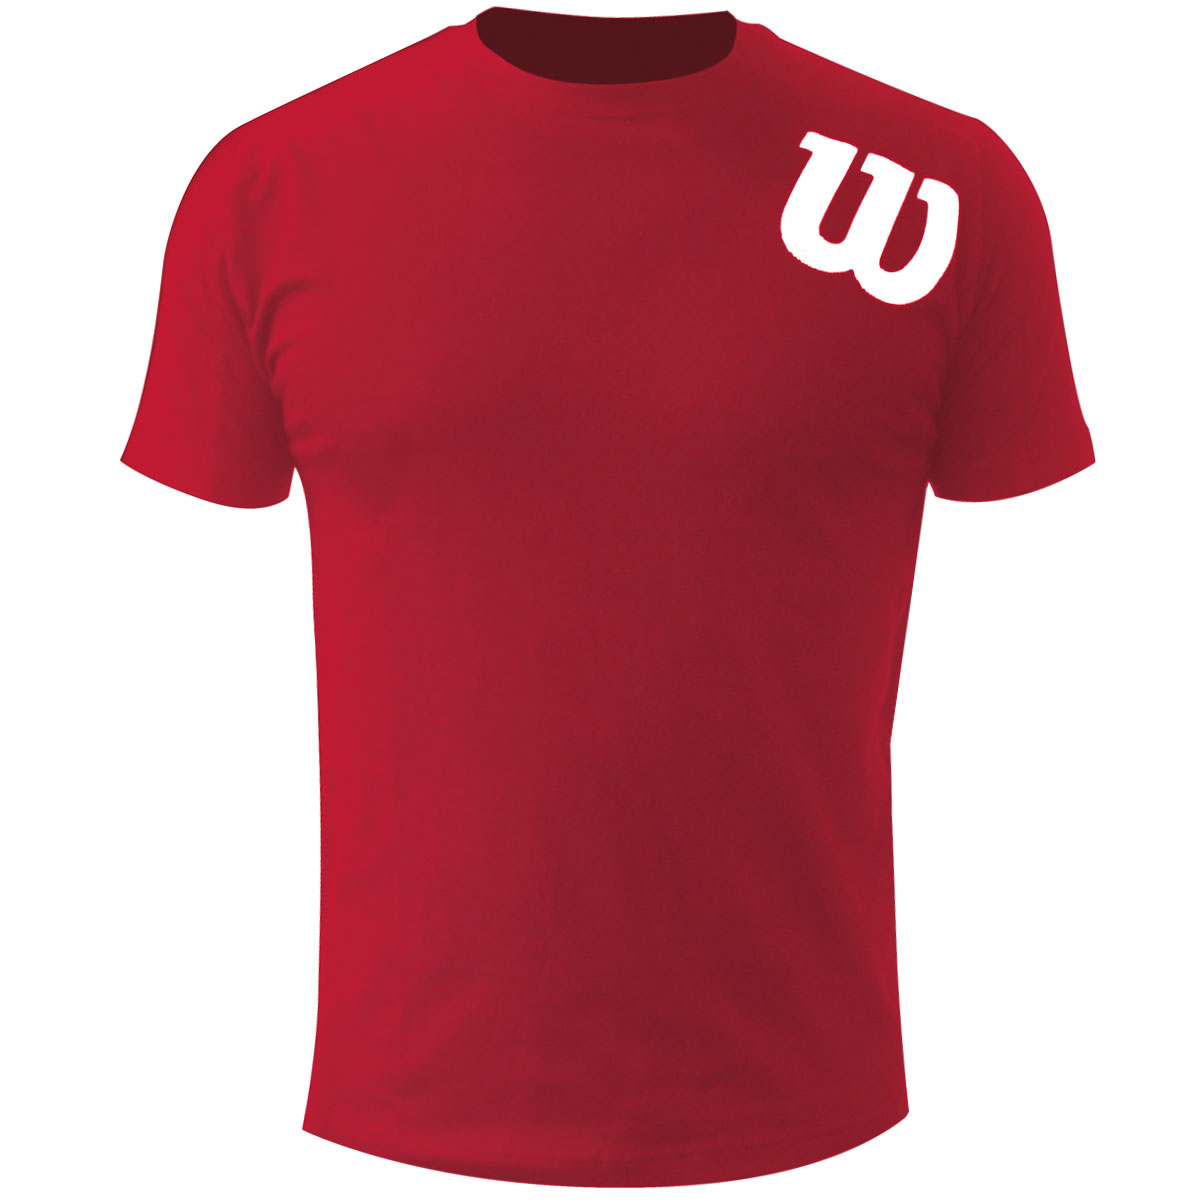 Image result for wilson t-shirt